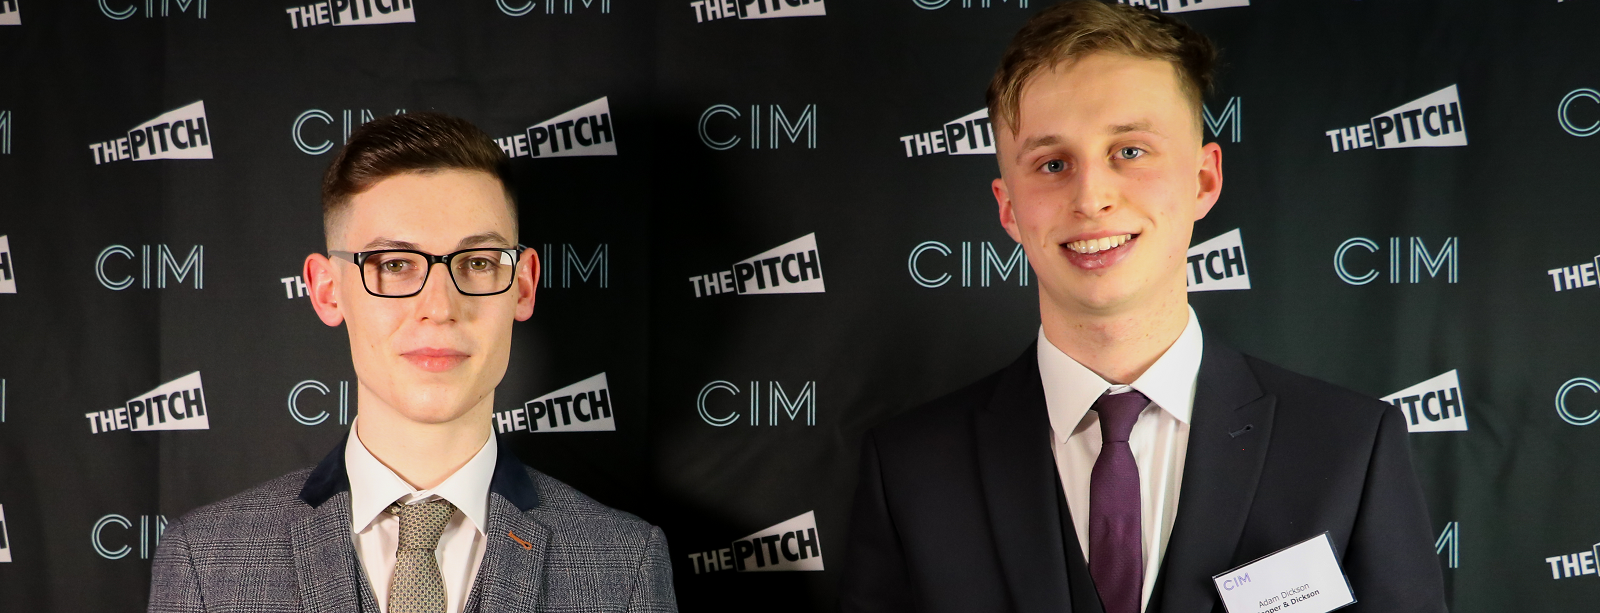 Thomas Cooper (left) and Adam Dickson, winners of The Pitch 2020